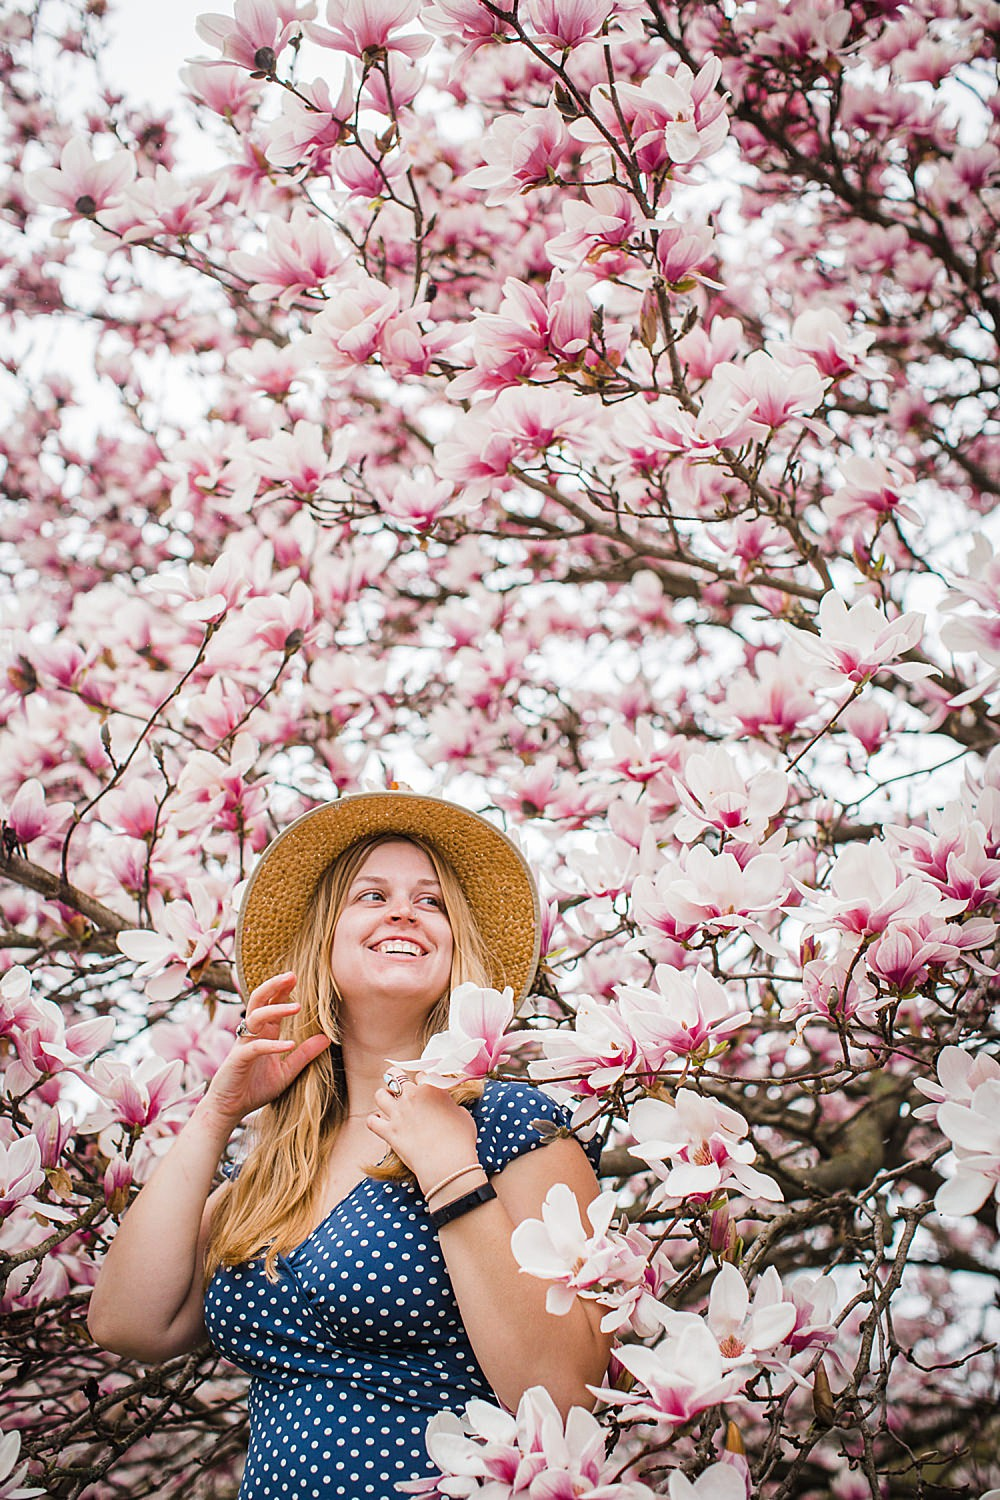 Photo of a young woman in a straw hat and polka dot dress standing in a tree of magnolia blossoms.